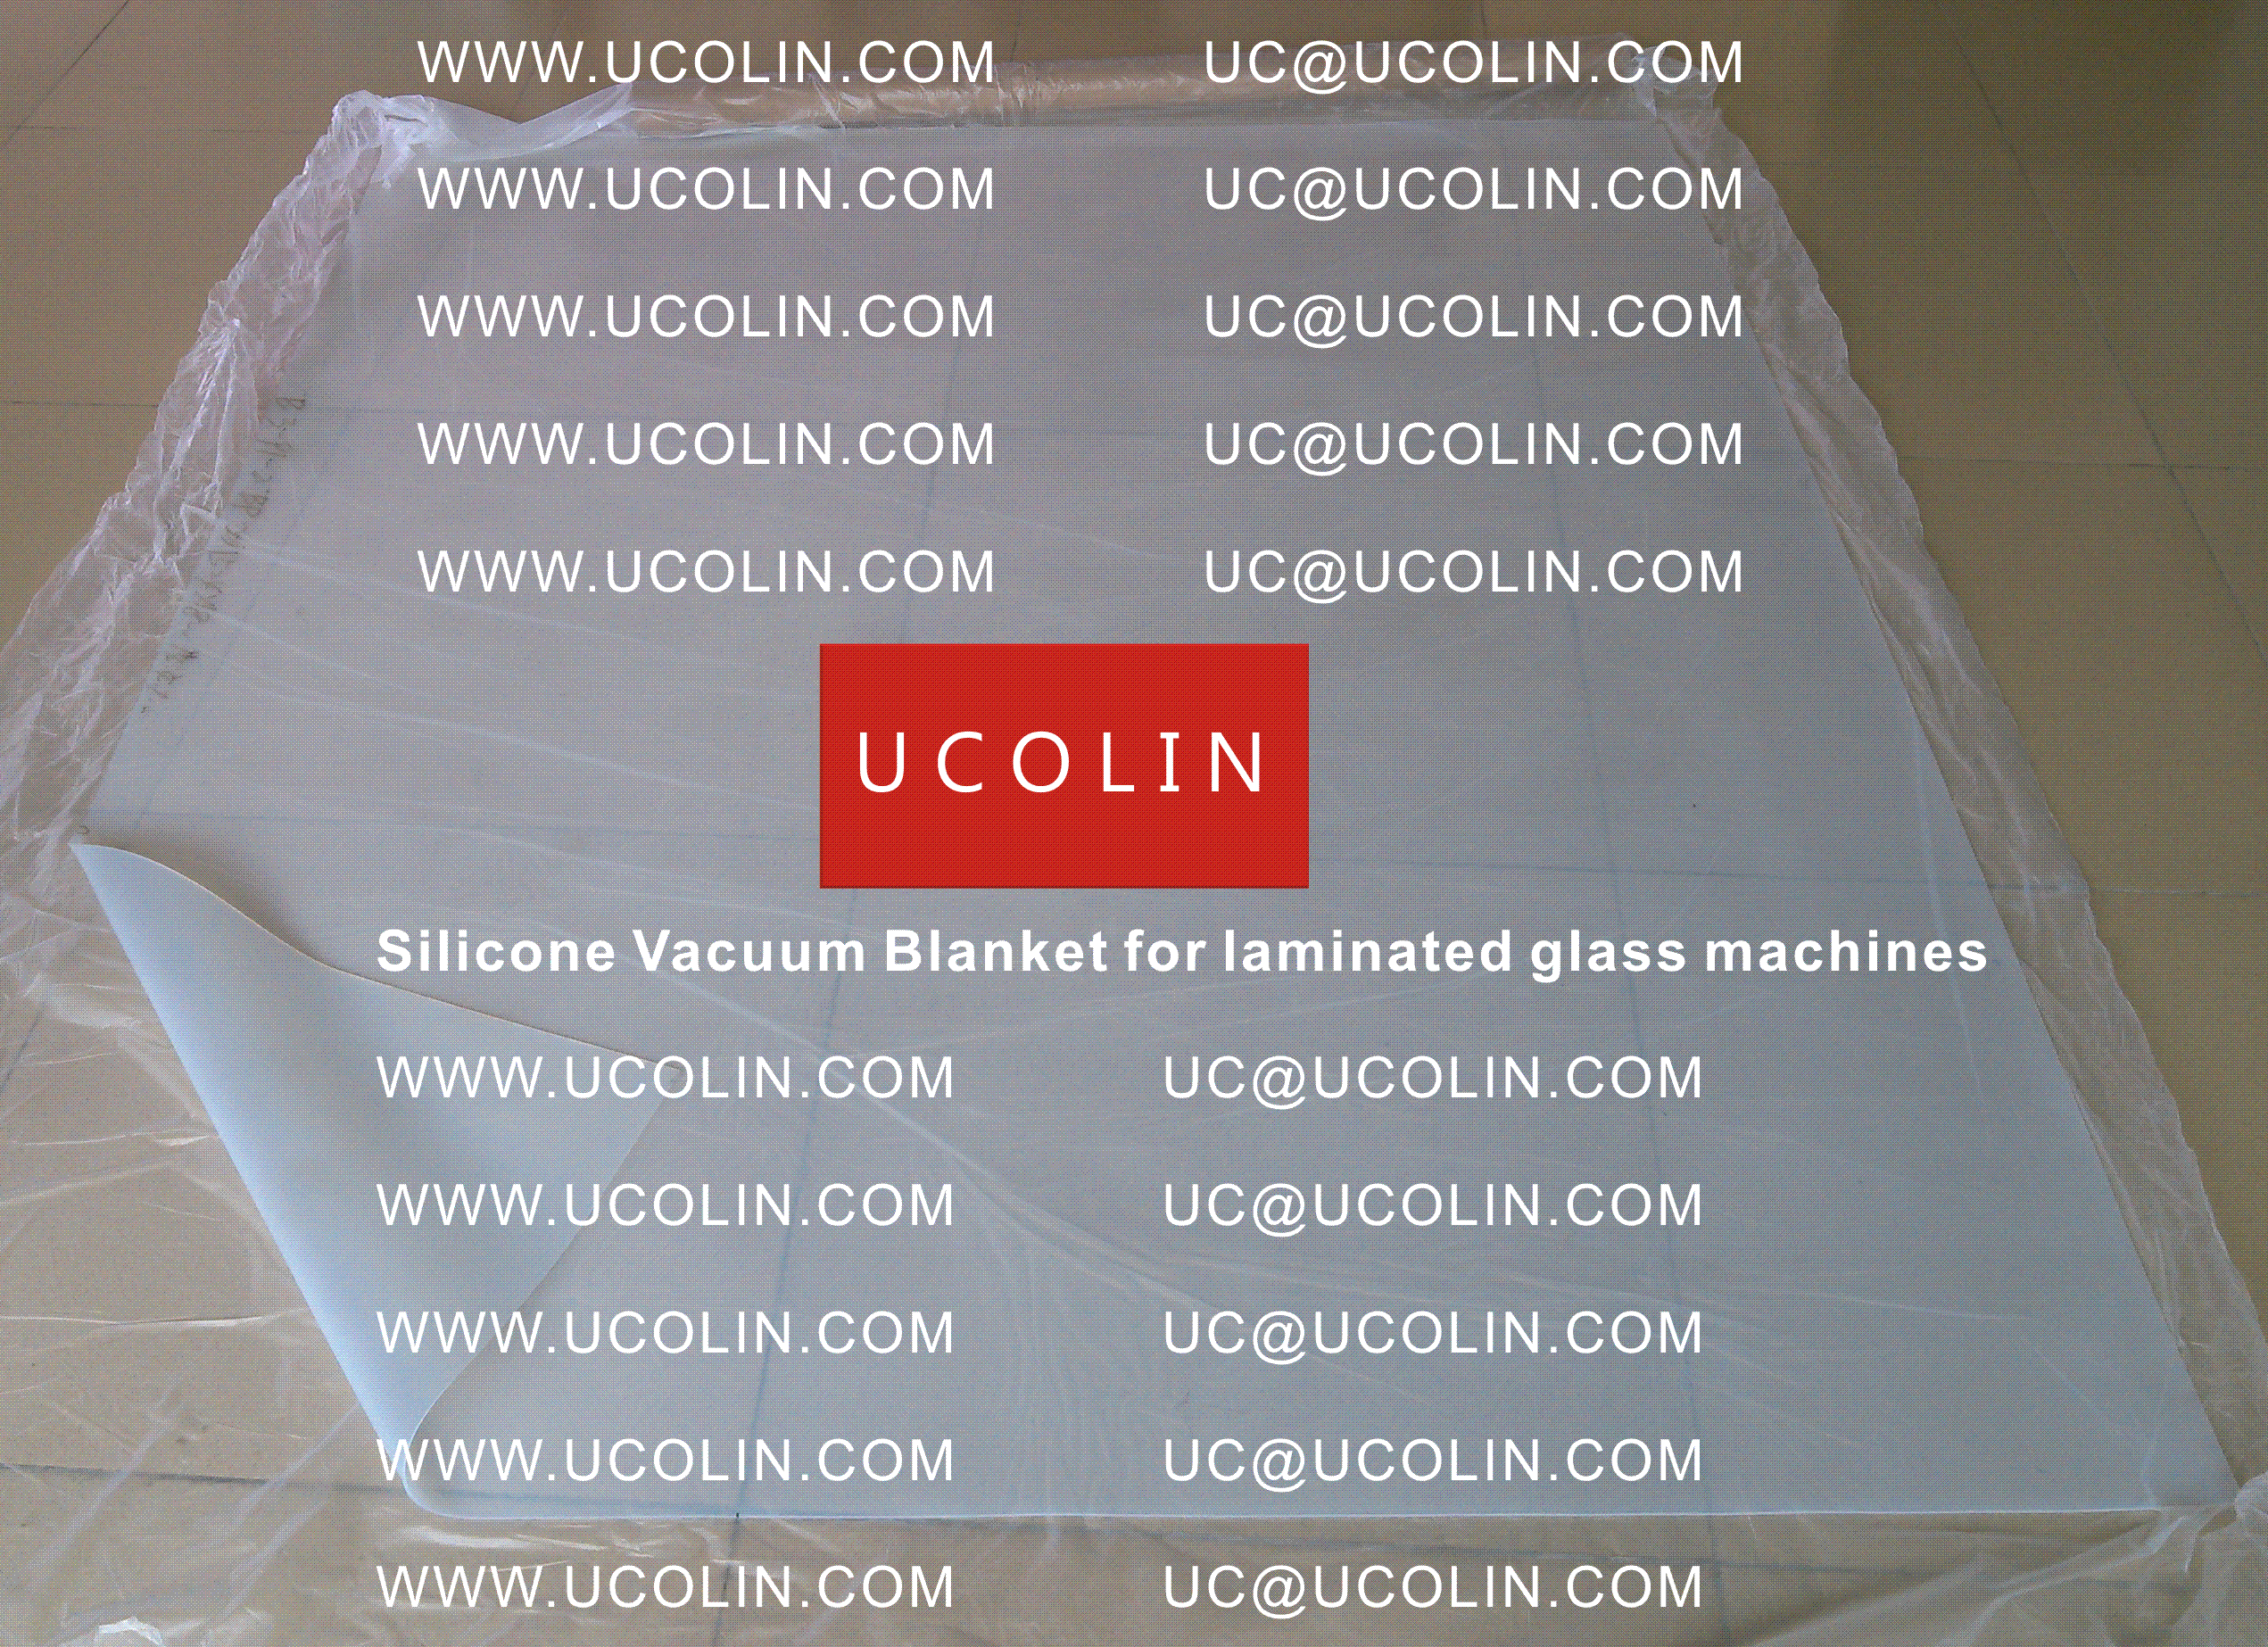 001 Silicone vacuum blanket for laminated glass machines